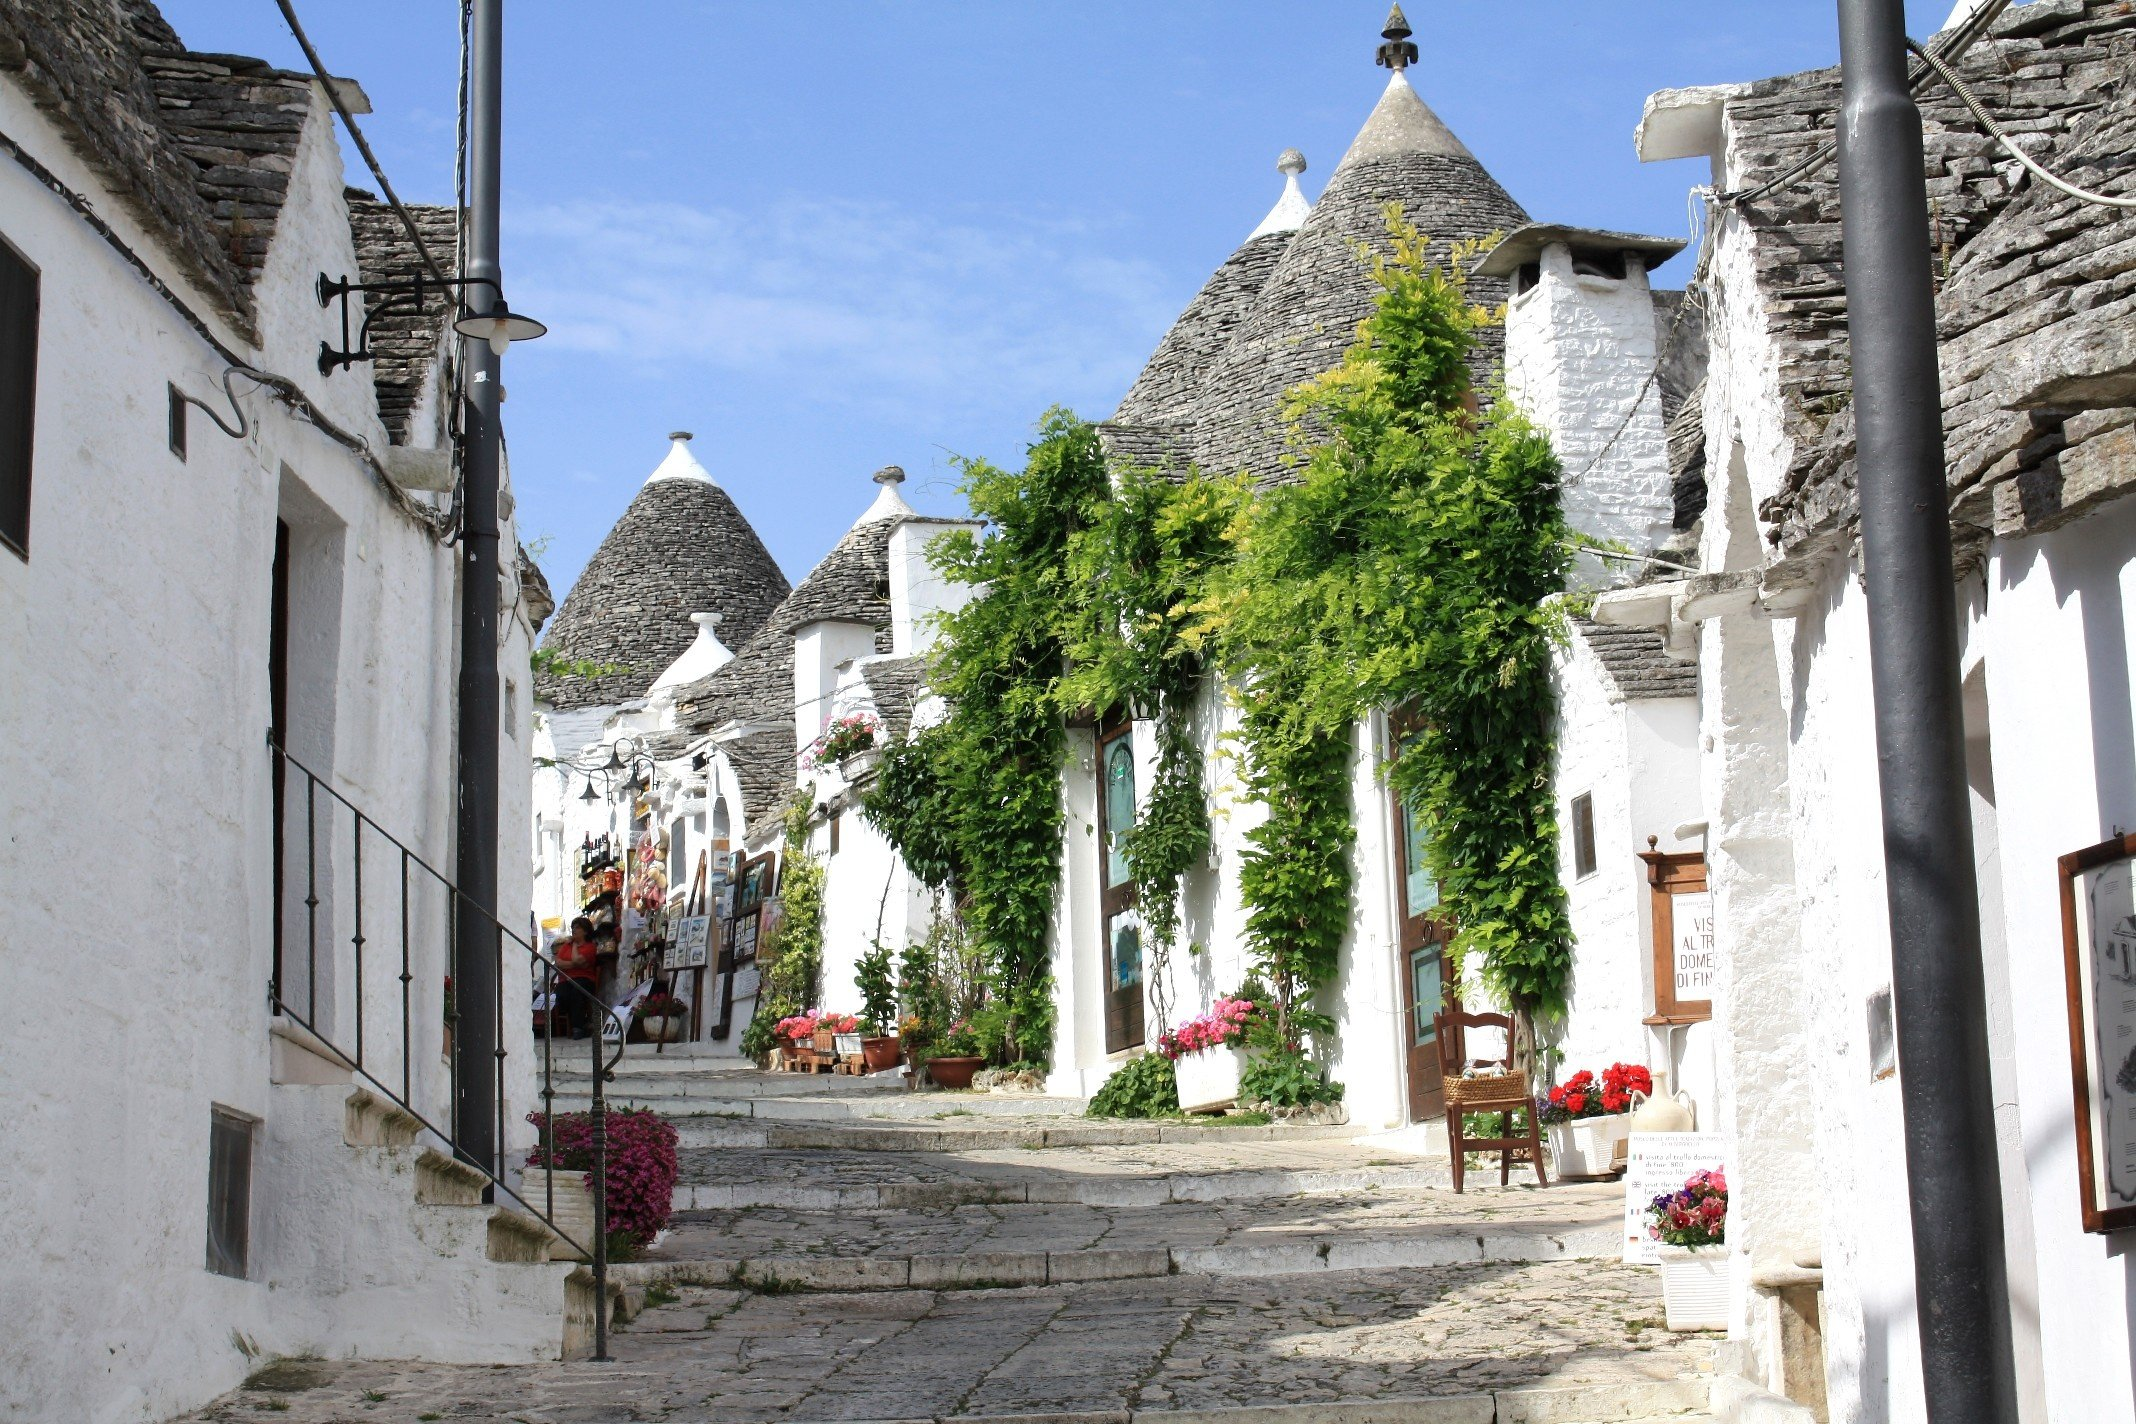 Alberobello - places in Apulia